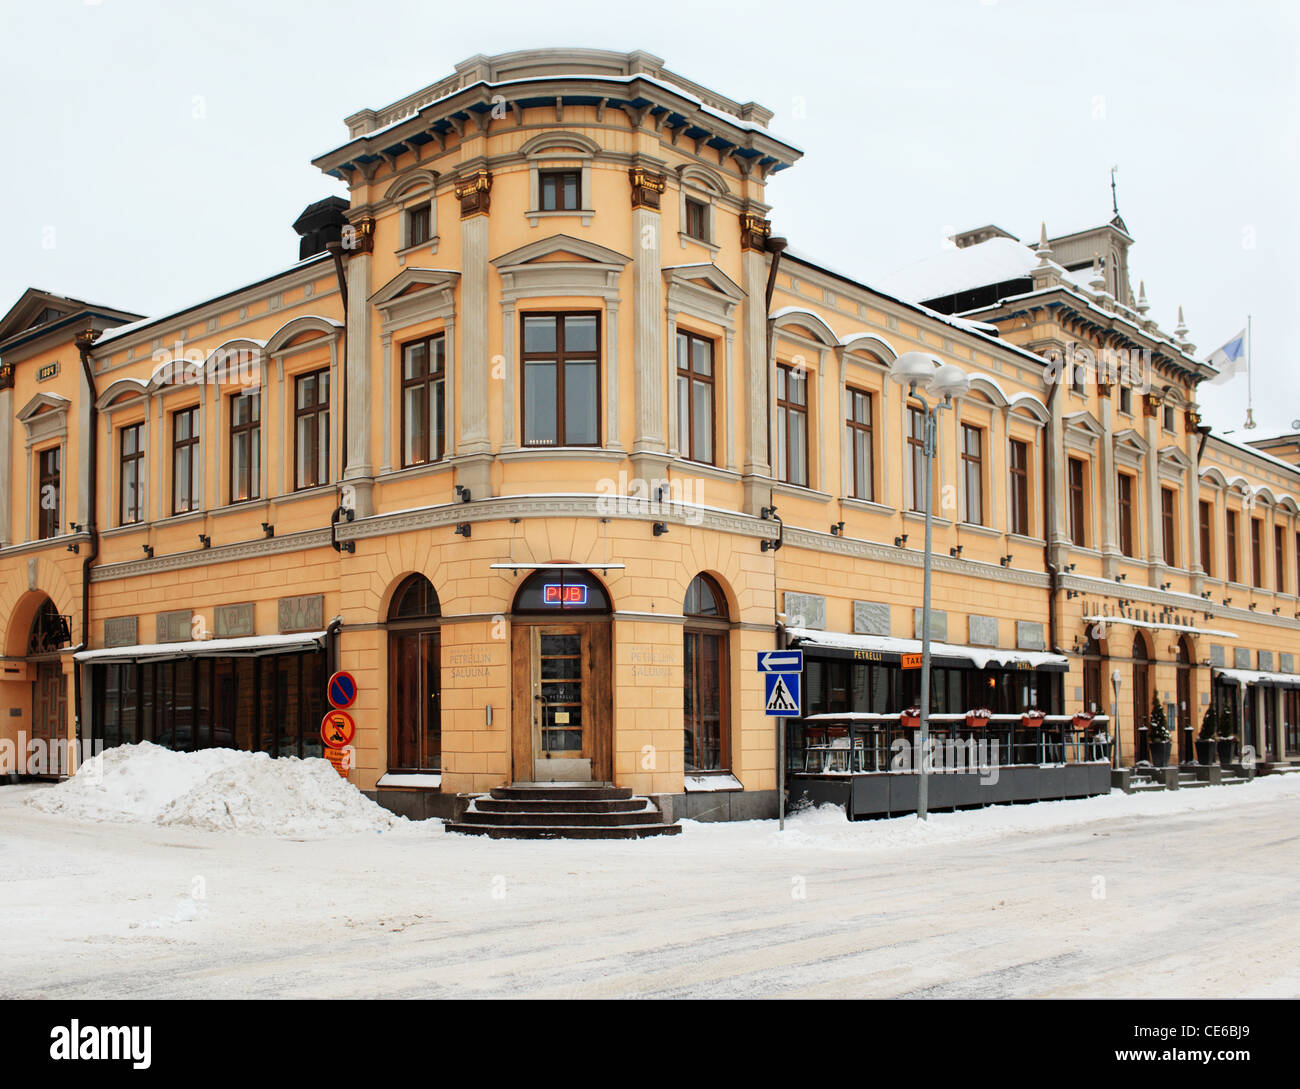 Old house in Oulu, Finland - Stock Image